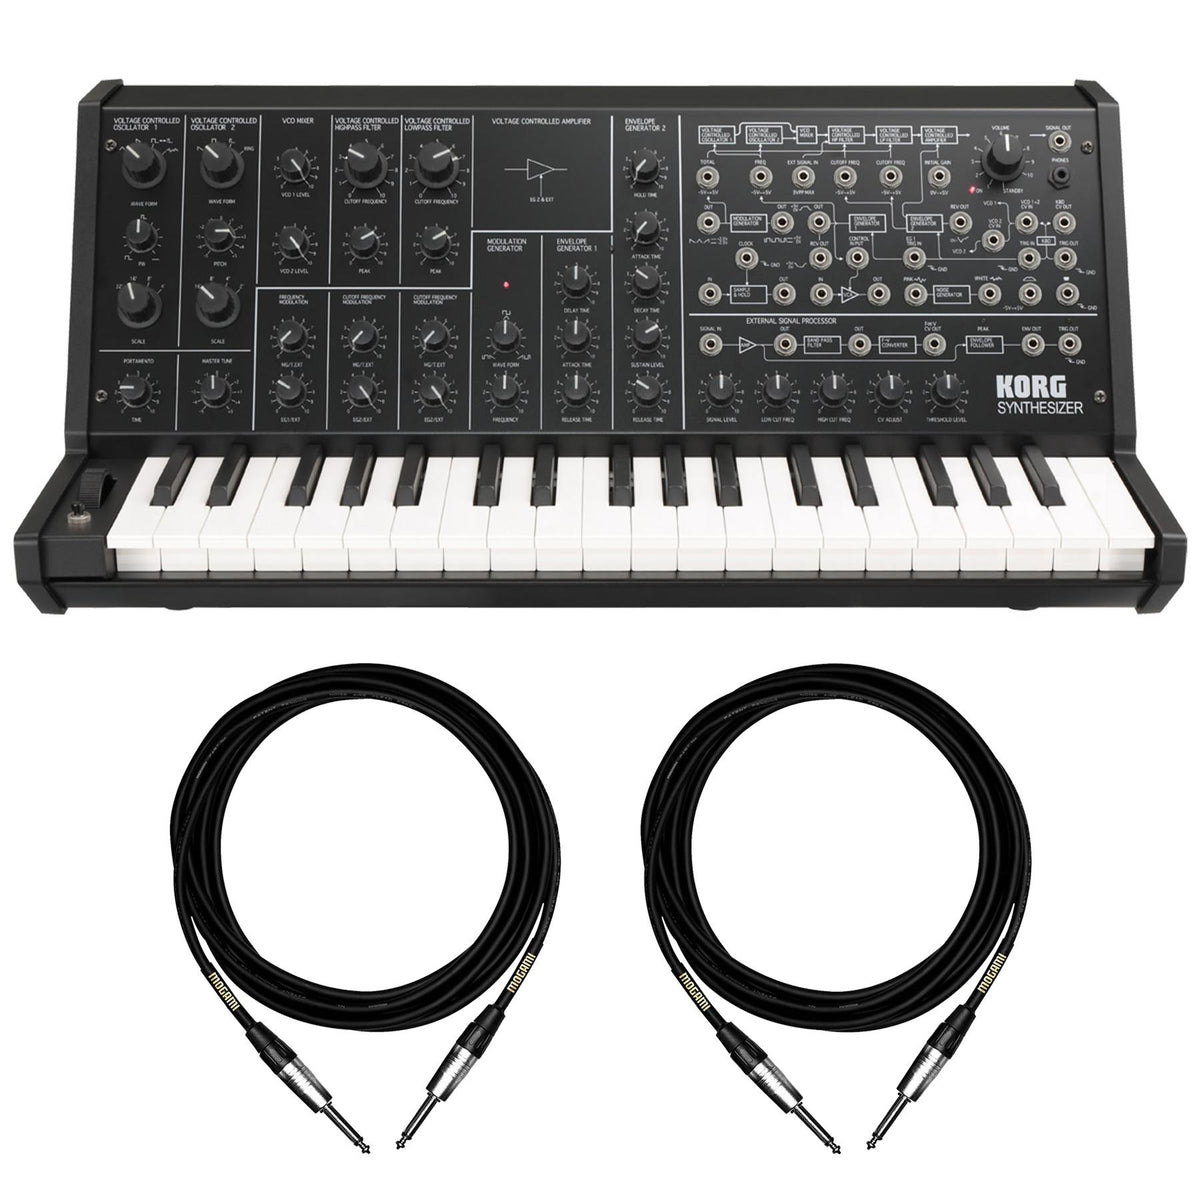 "Korg MS20 Mini Synthesizer Bundle with 2 10-foot Mogami 1/4"" Instrument Cables"